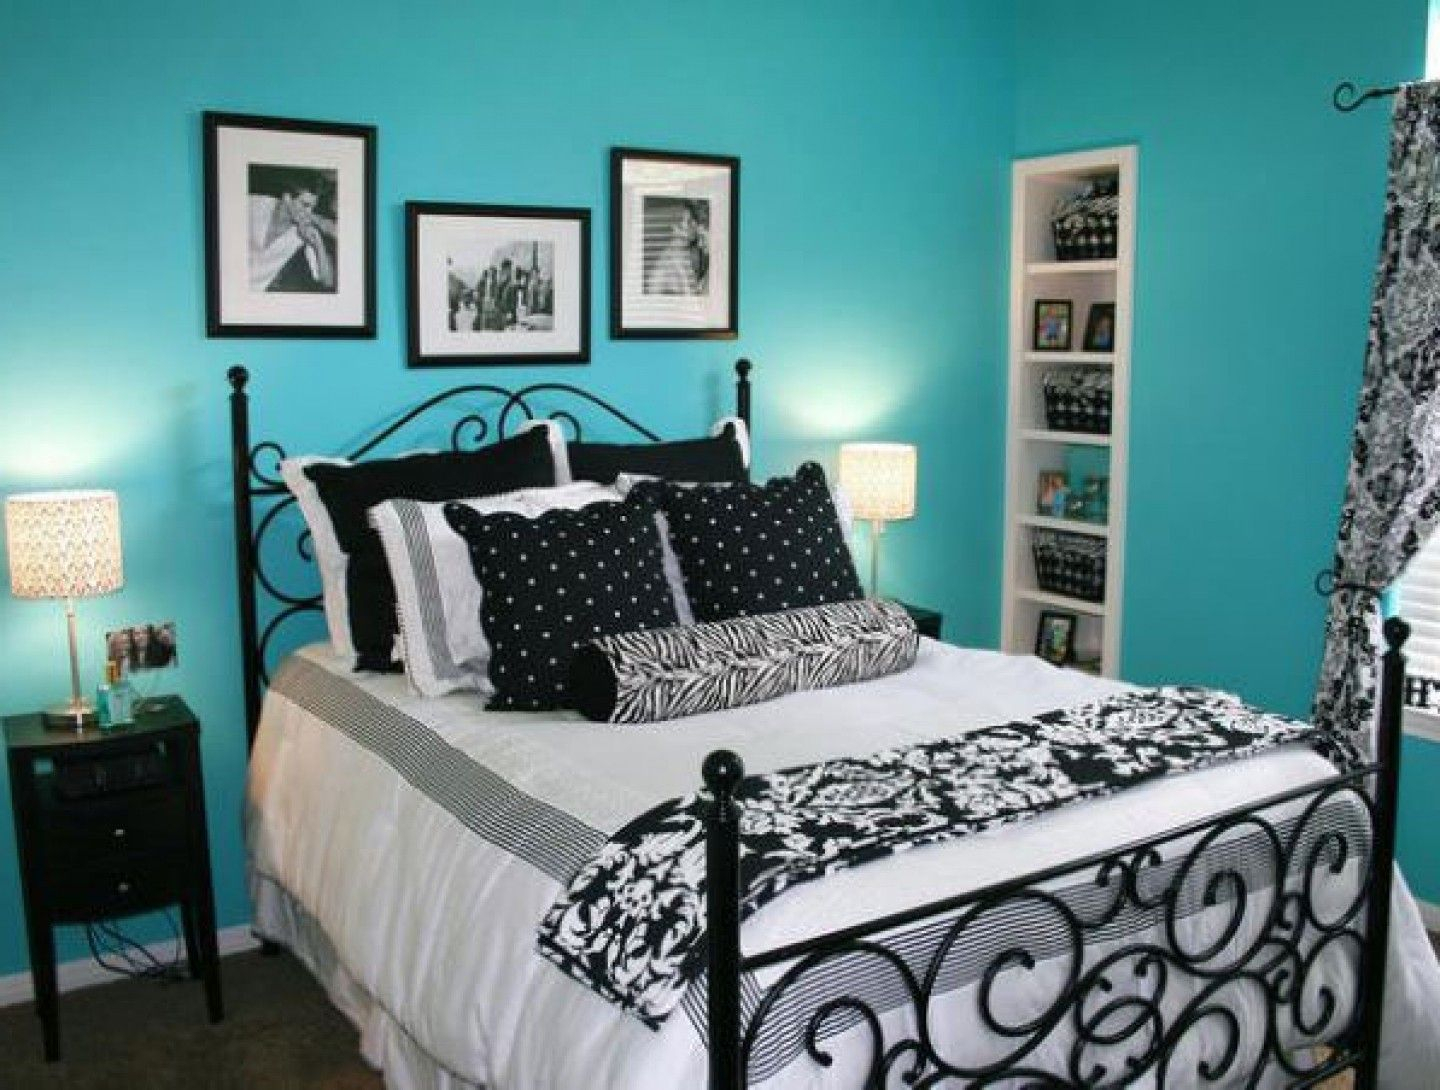 10 Amazing Black And Blue Bedroom Ideas 30 turquoise room ideas for your home bolondon turquoise room 2020